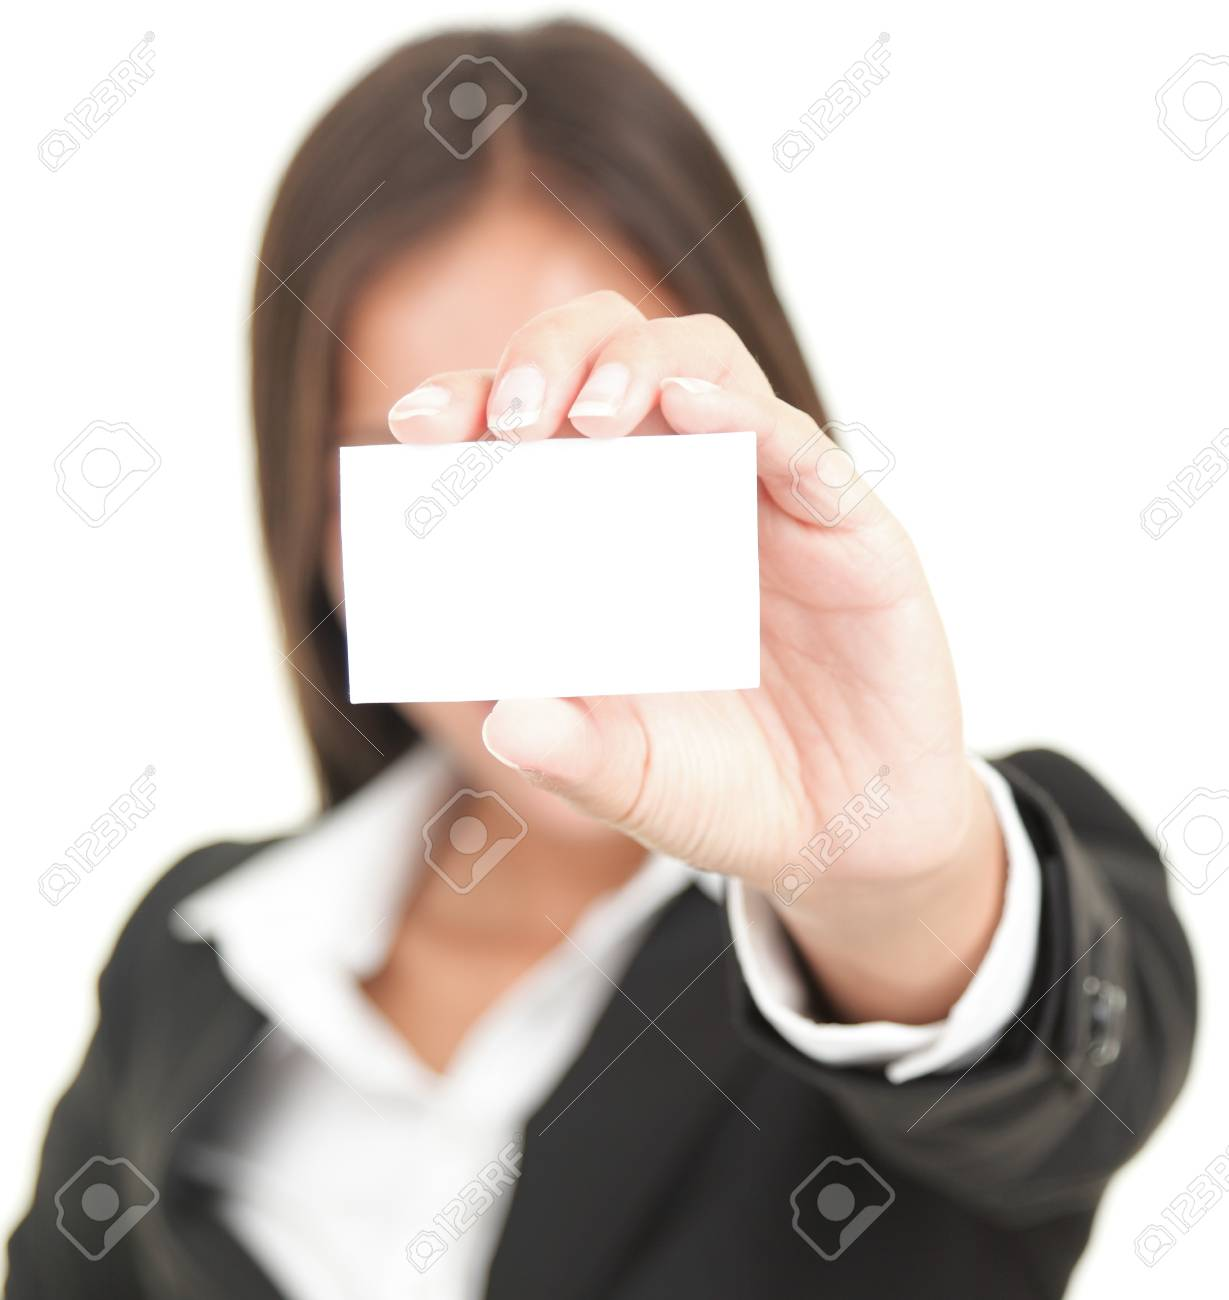 business person showing business card. Isolated on white background Stock Photo - 8114697